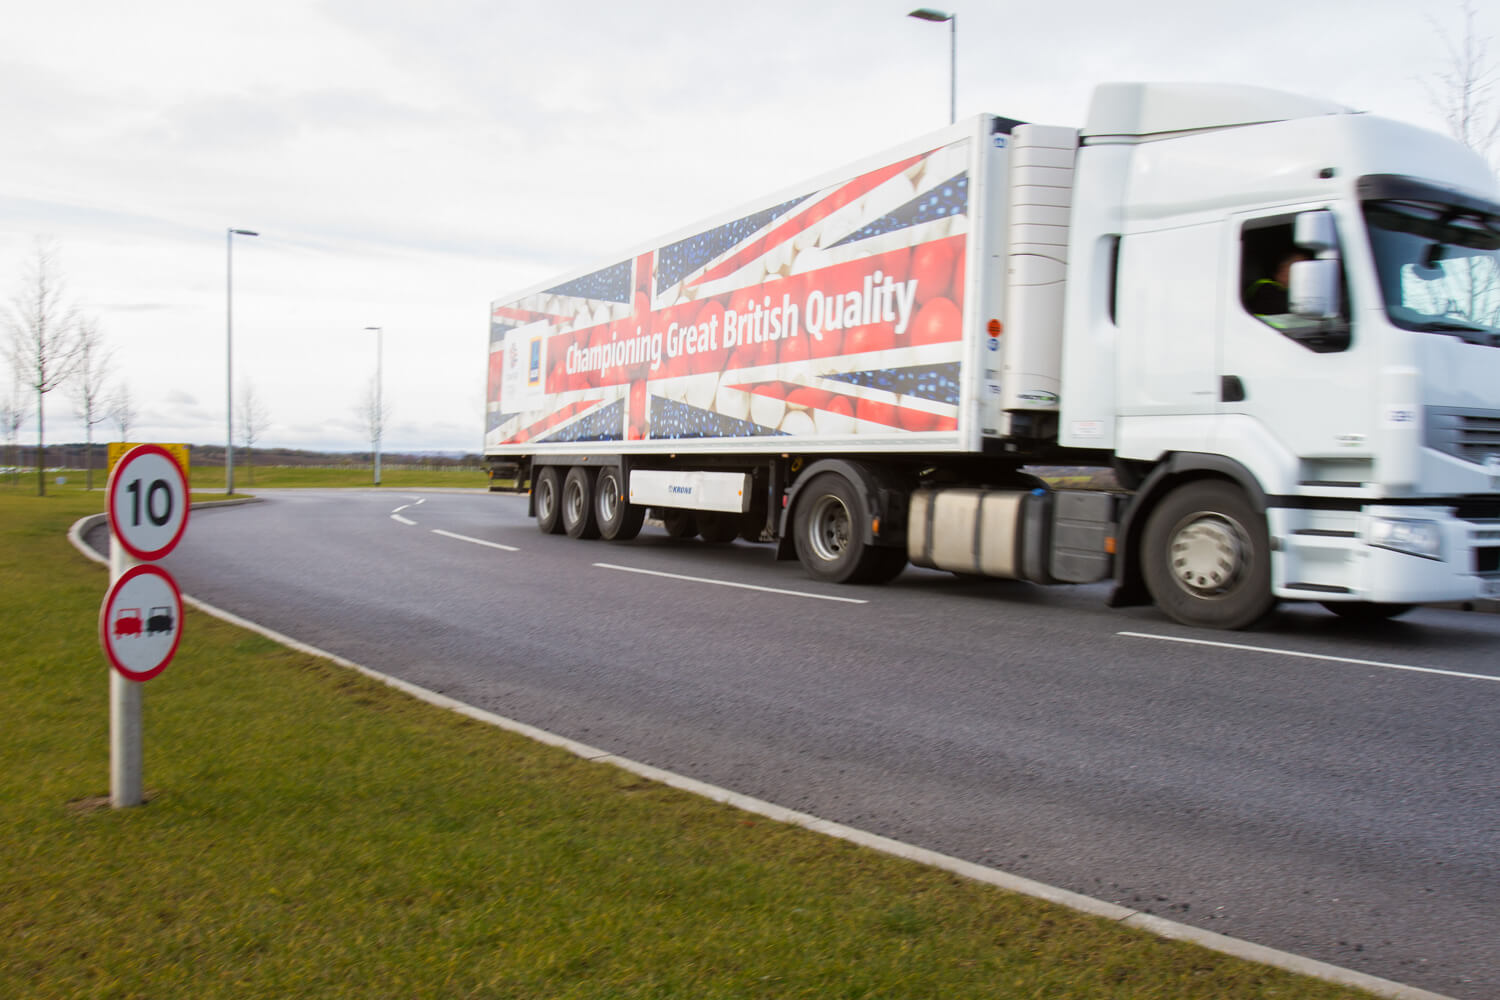 Lorry with British flag on side - 'Championing Great British Quality'